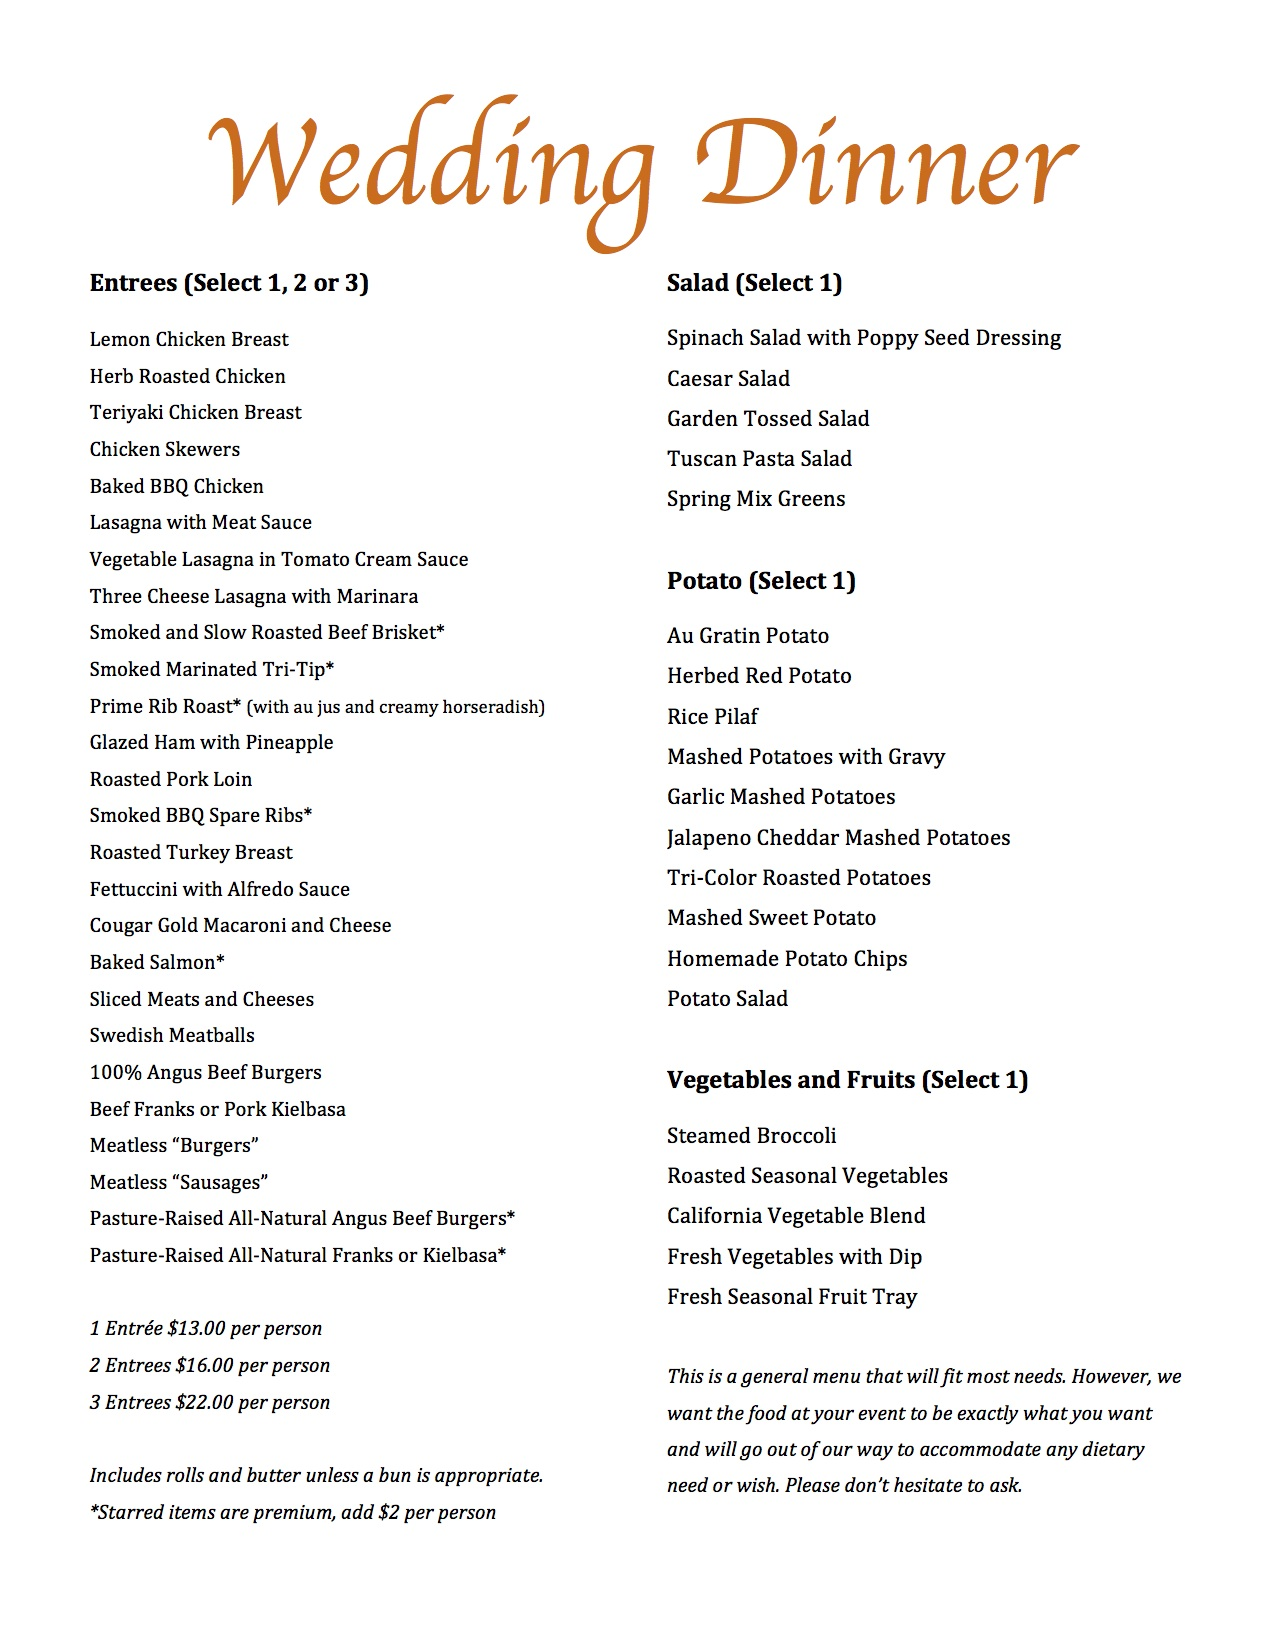 Magills Catering Wedding Menu « Magills Restaurant & Catering